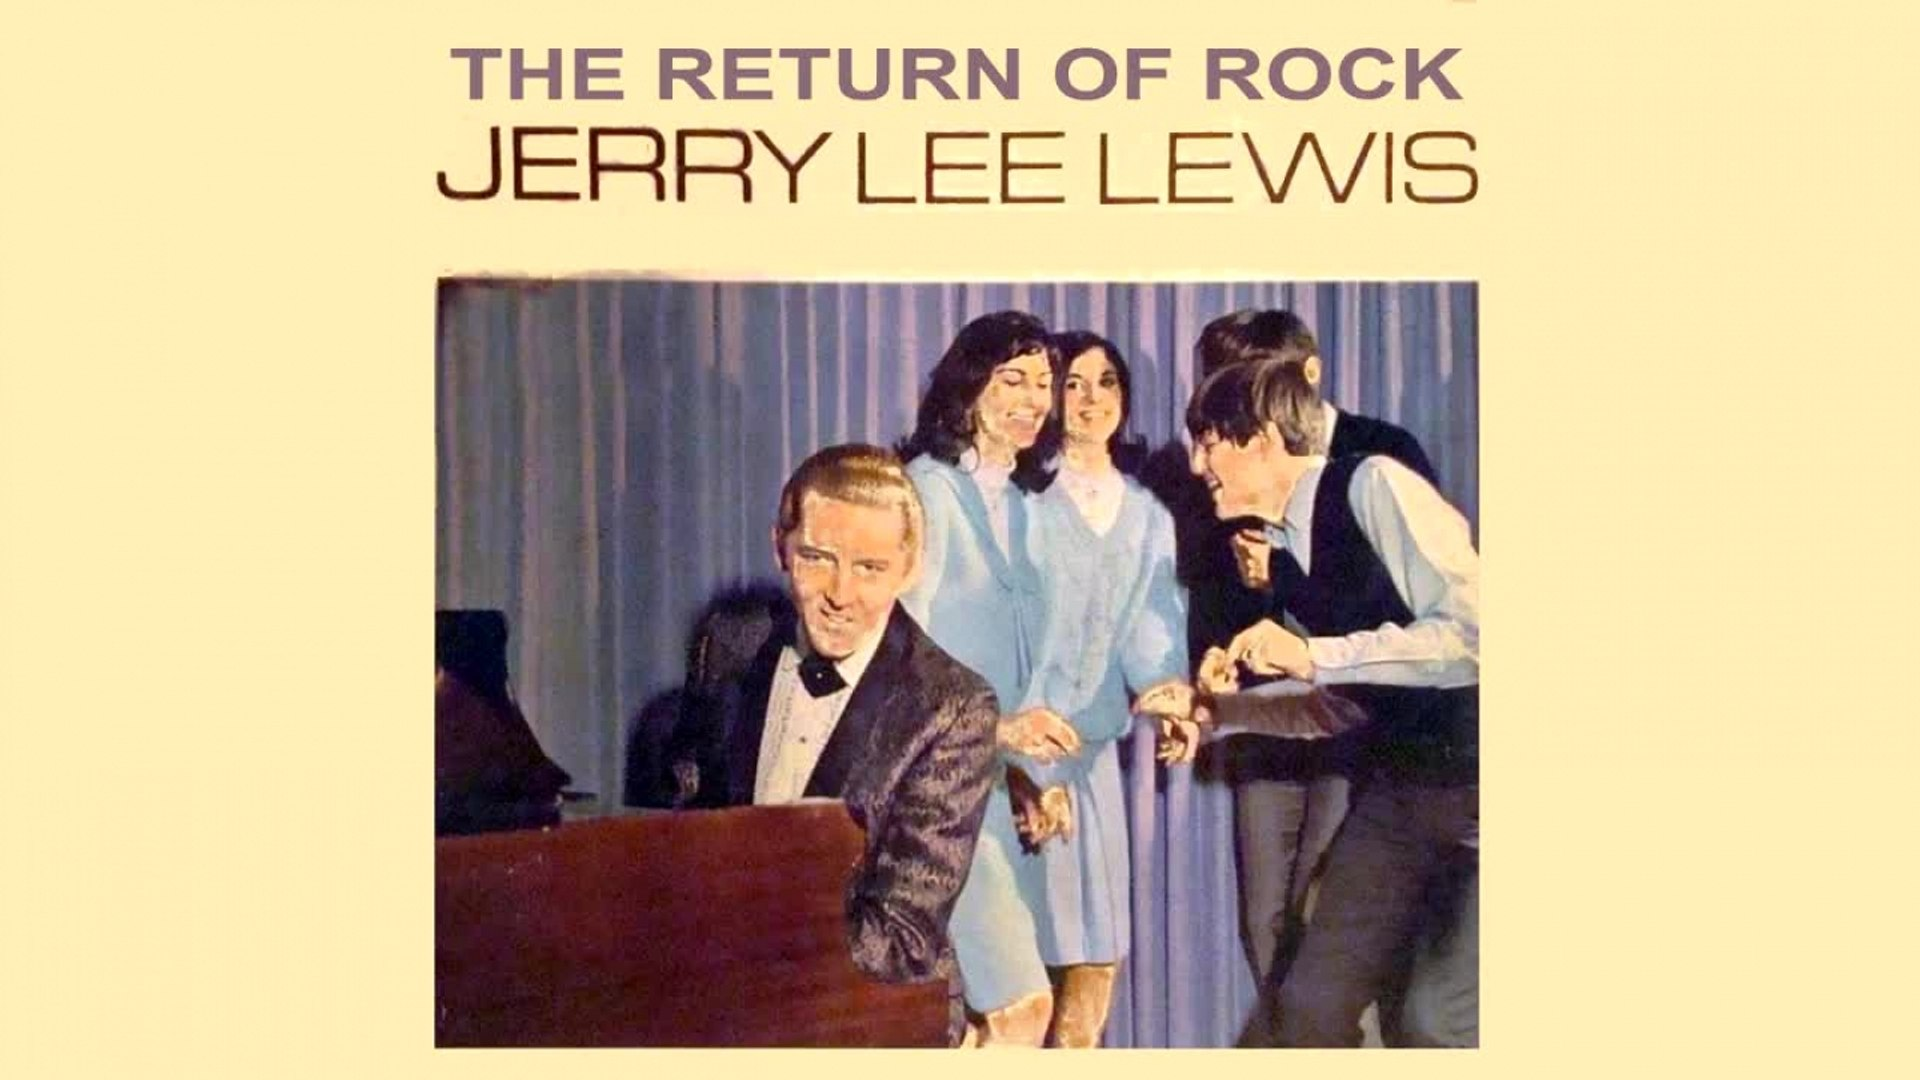 Jerry Lee Lewis - The Return Of Rock! and others Album - Vintage Music Songs